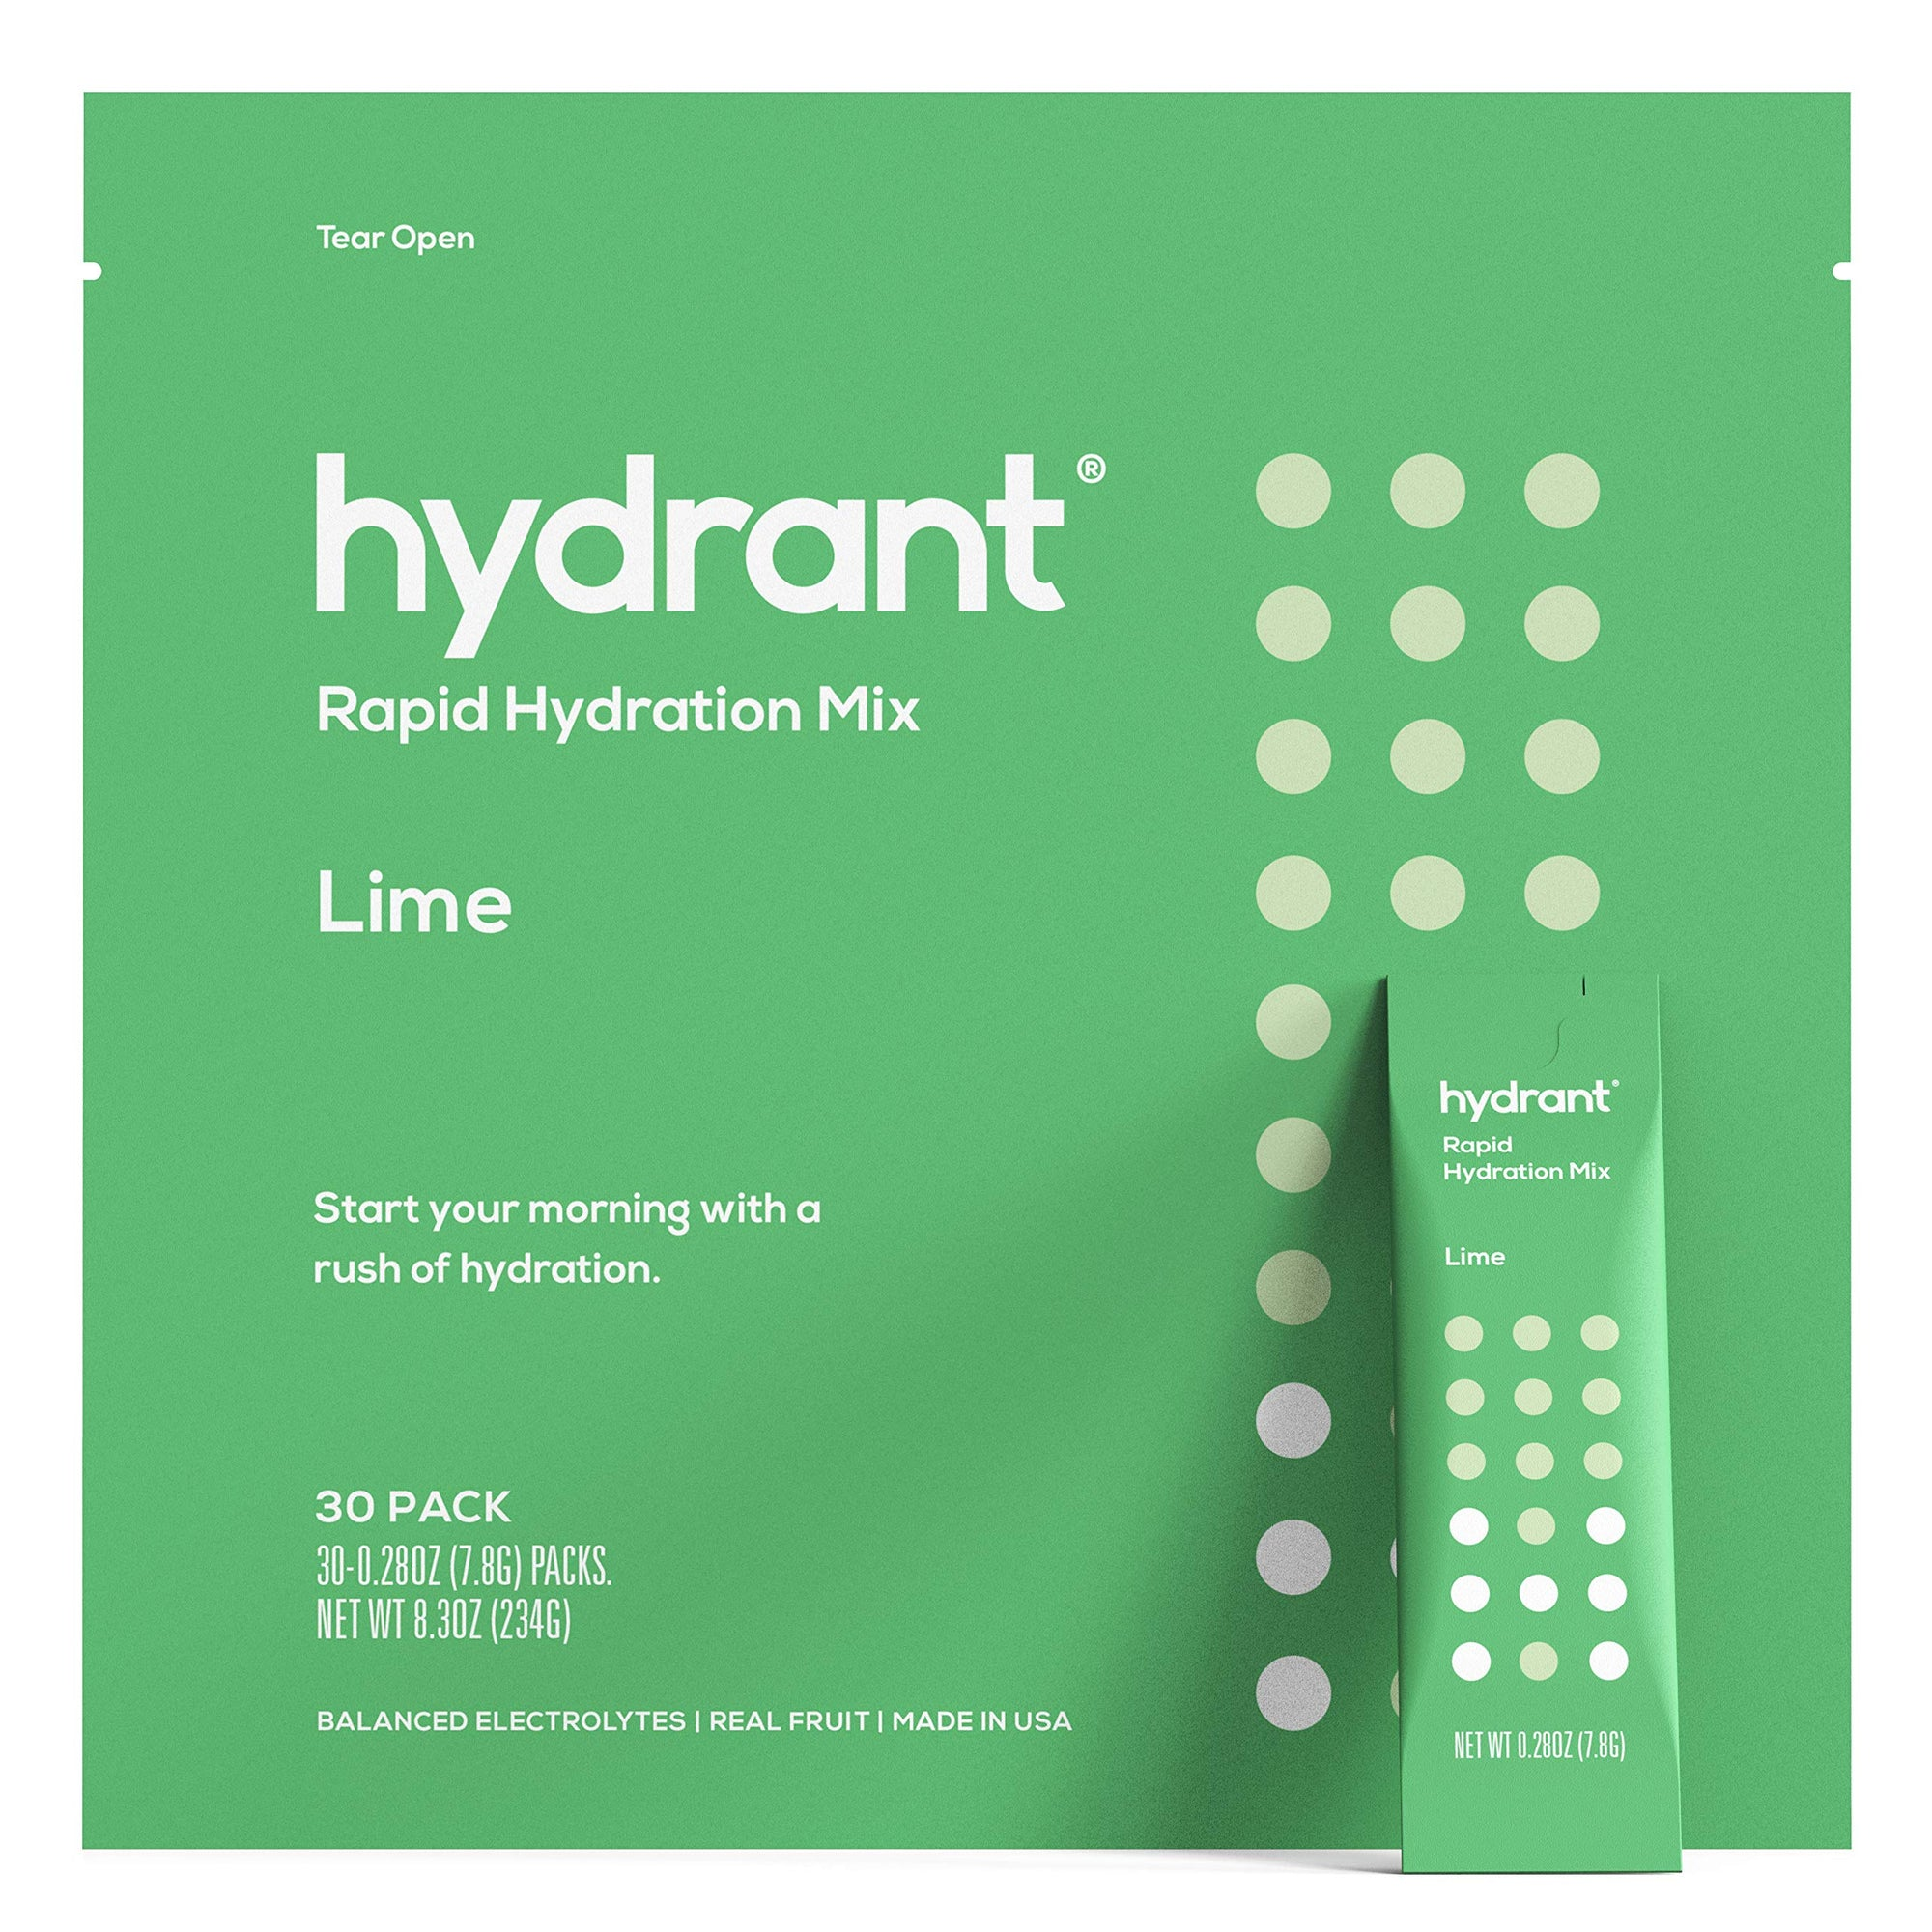 Hydrant Lime Rapid Hydration Mix Version 2 | Electrolyte Powder | Dehydration Recovery Drink - 30pk